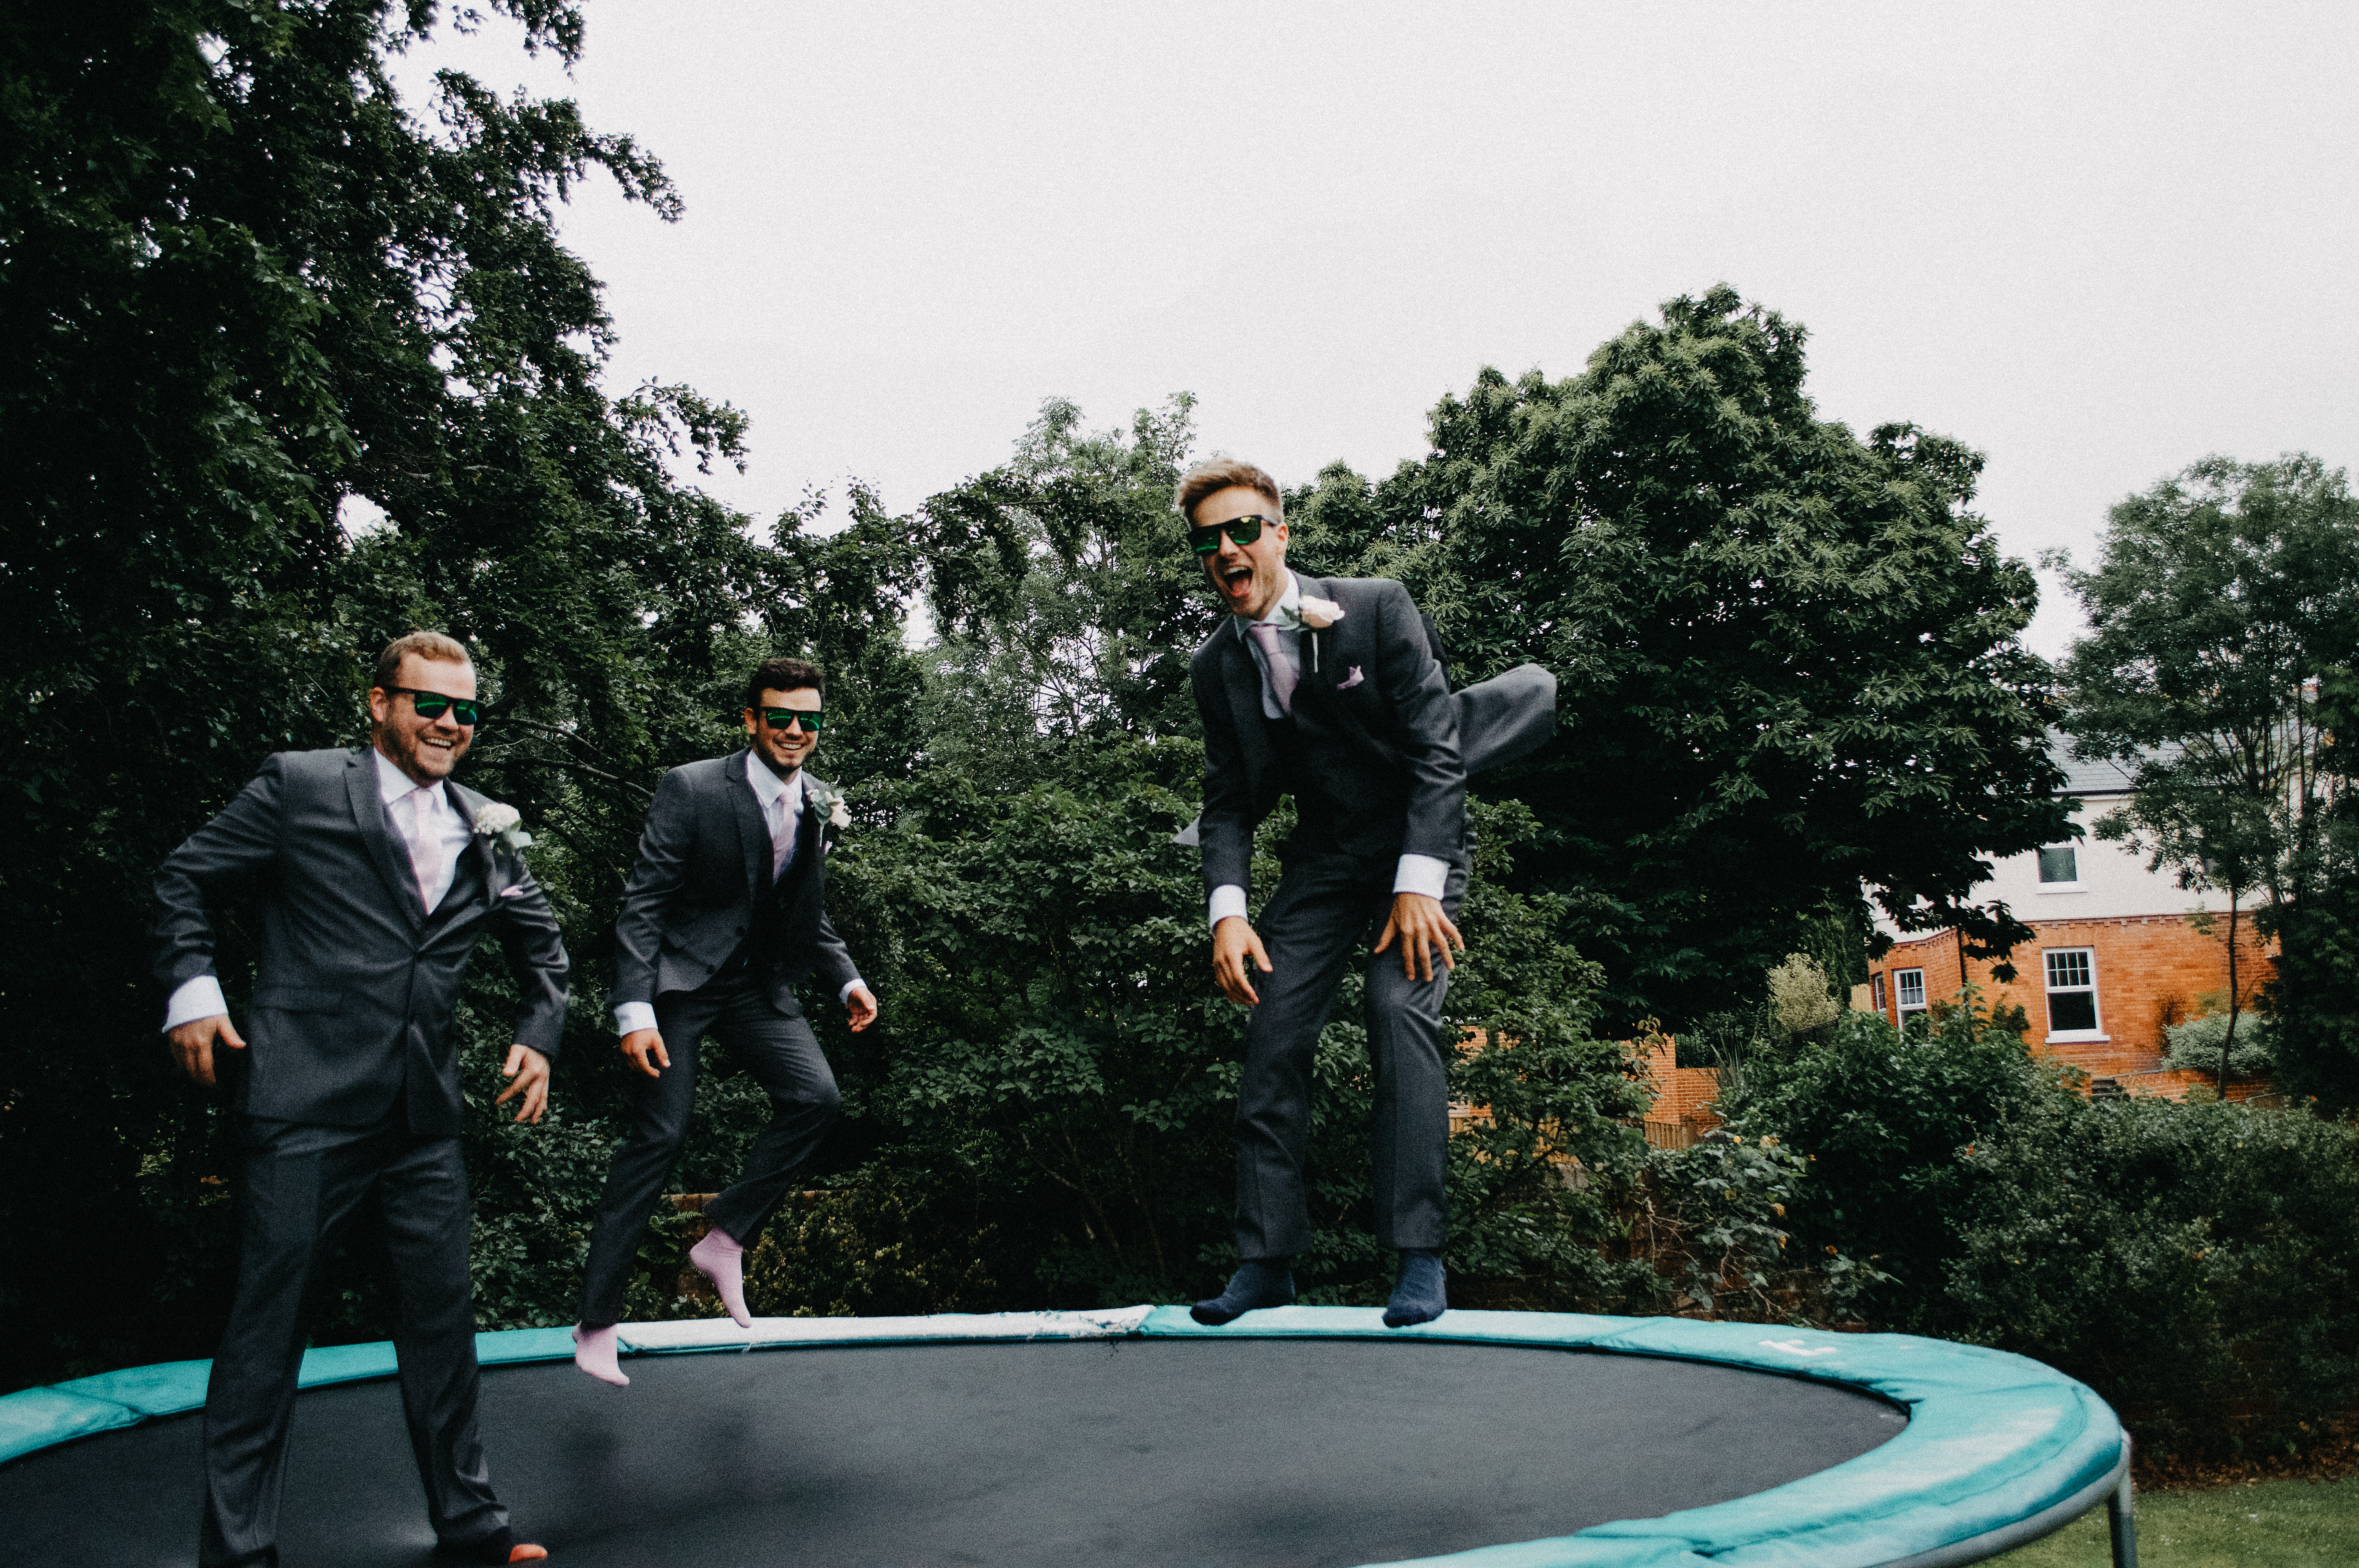 groom bouncing on a trampoline